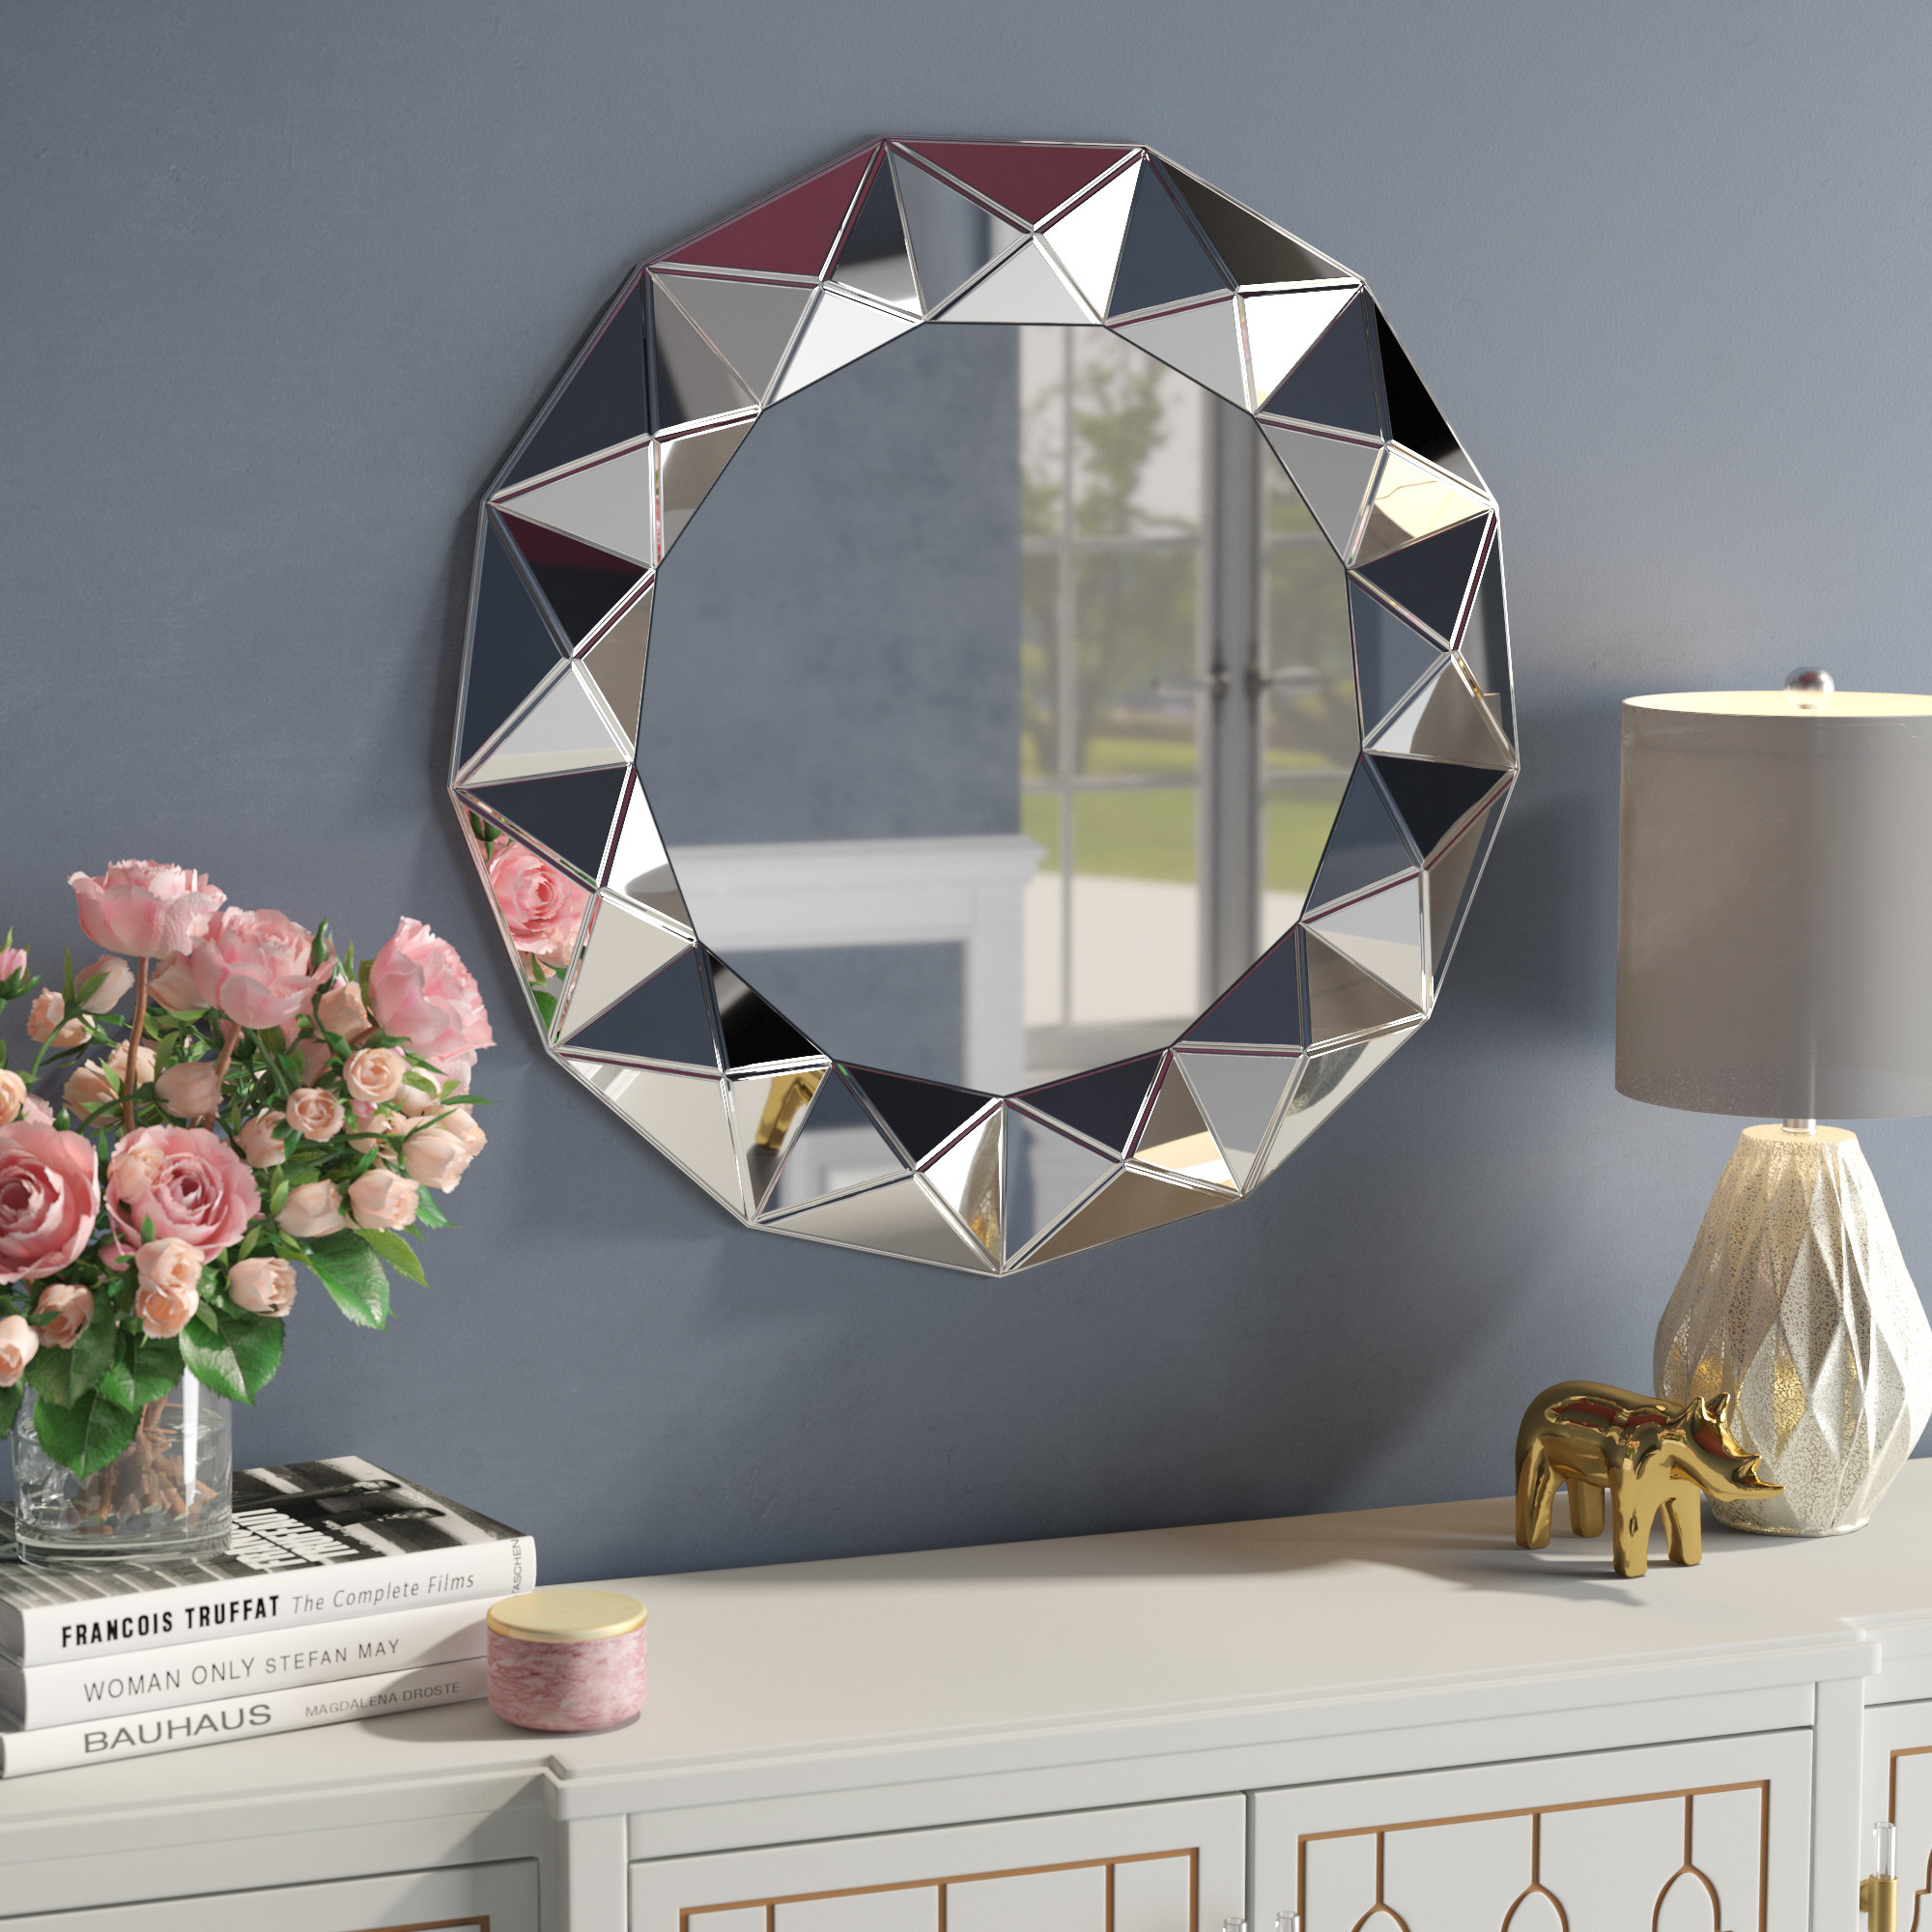 Decorative Hallway Wall Mirror | Wayfair For Bem Decorative Wall Mirrors (Photo 5 of 30)